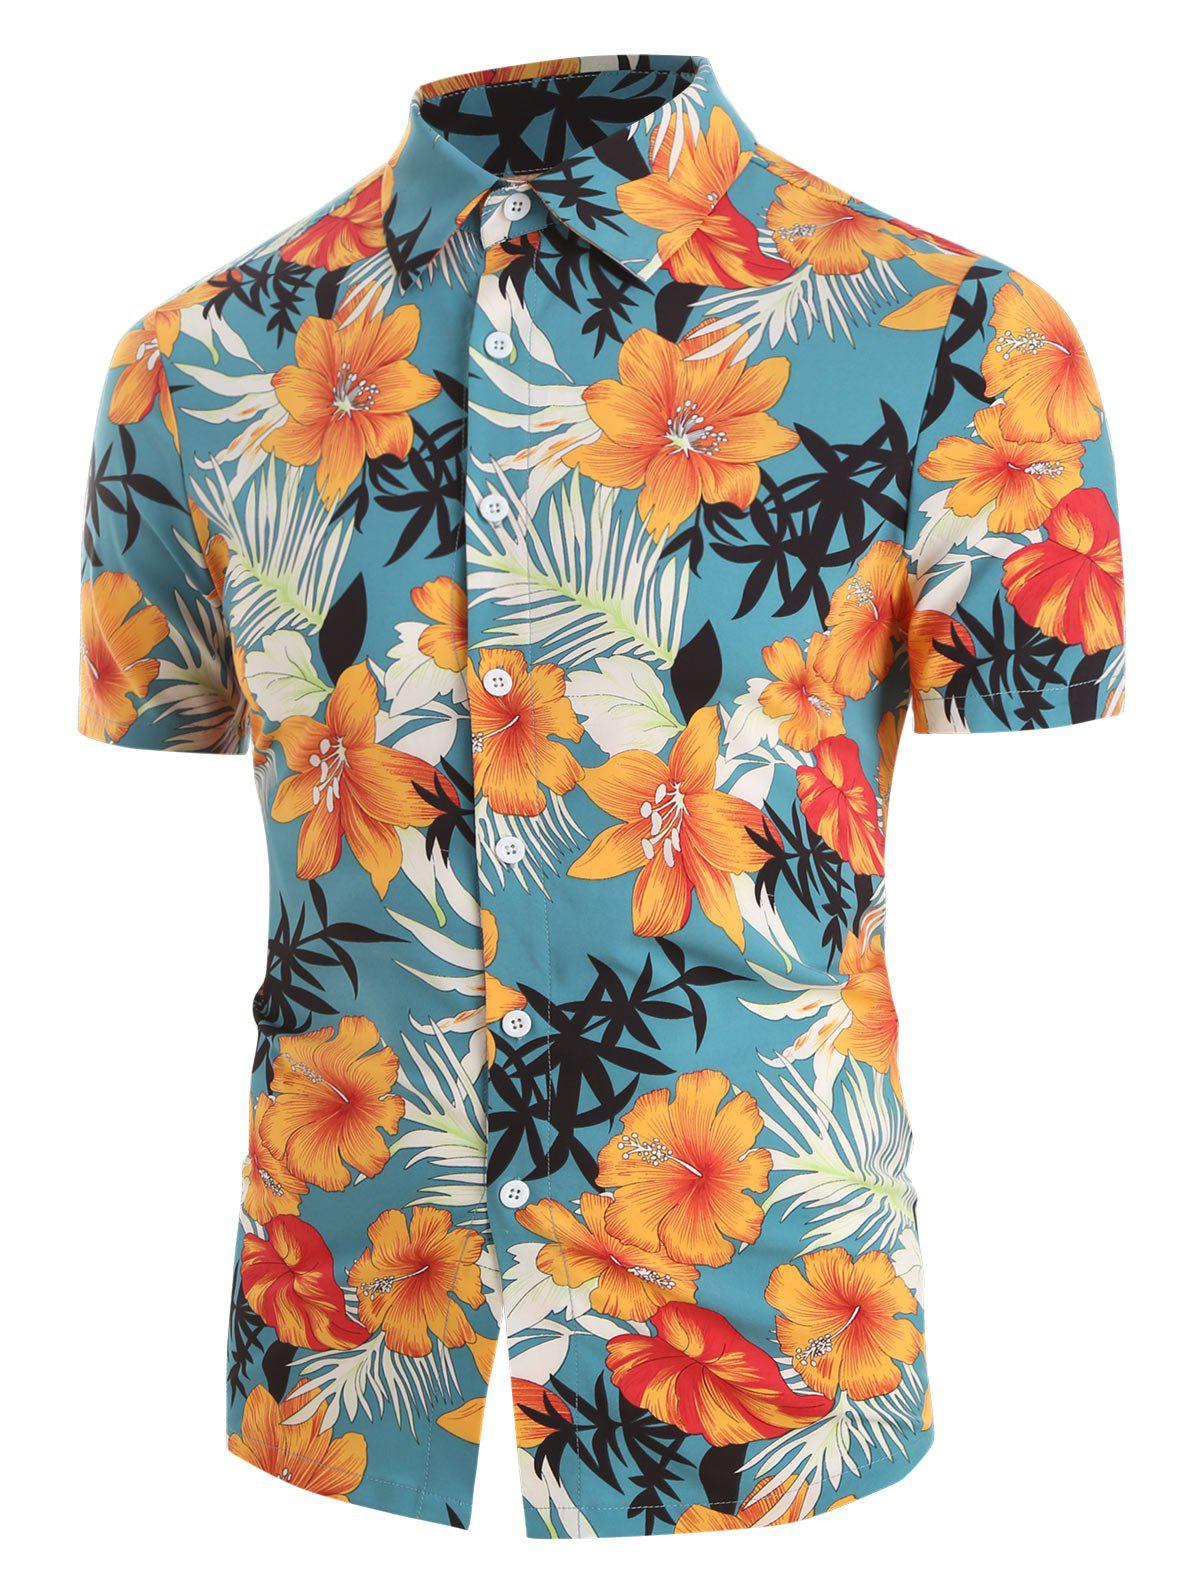 Tropical Flowers and Leaf Print Button Up Shirt - multicolor A 2XL